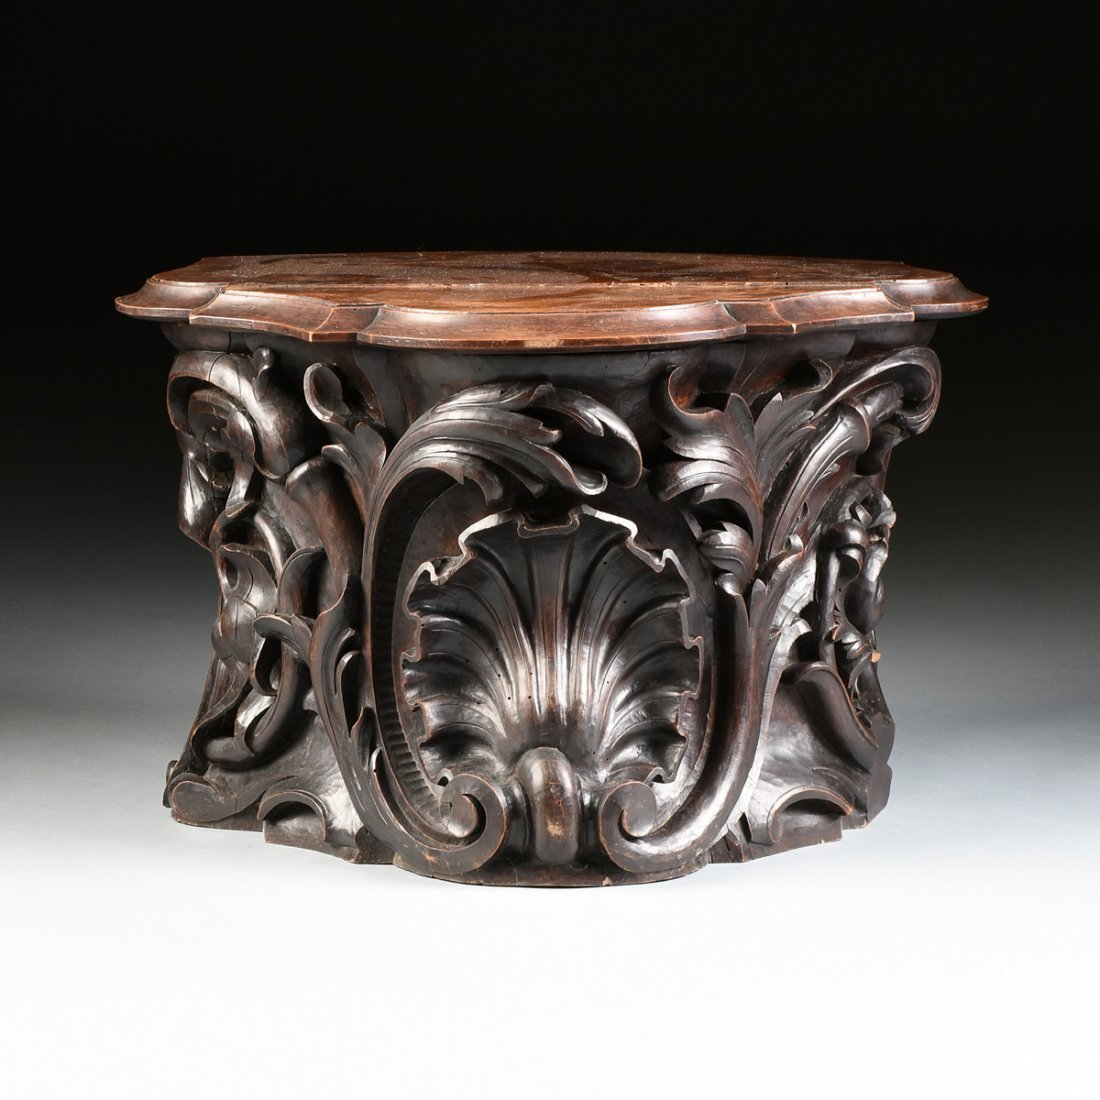 A ROCOCO REVIVAL STYLE CARVED WALNUT PEDESTAL BASE